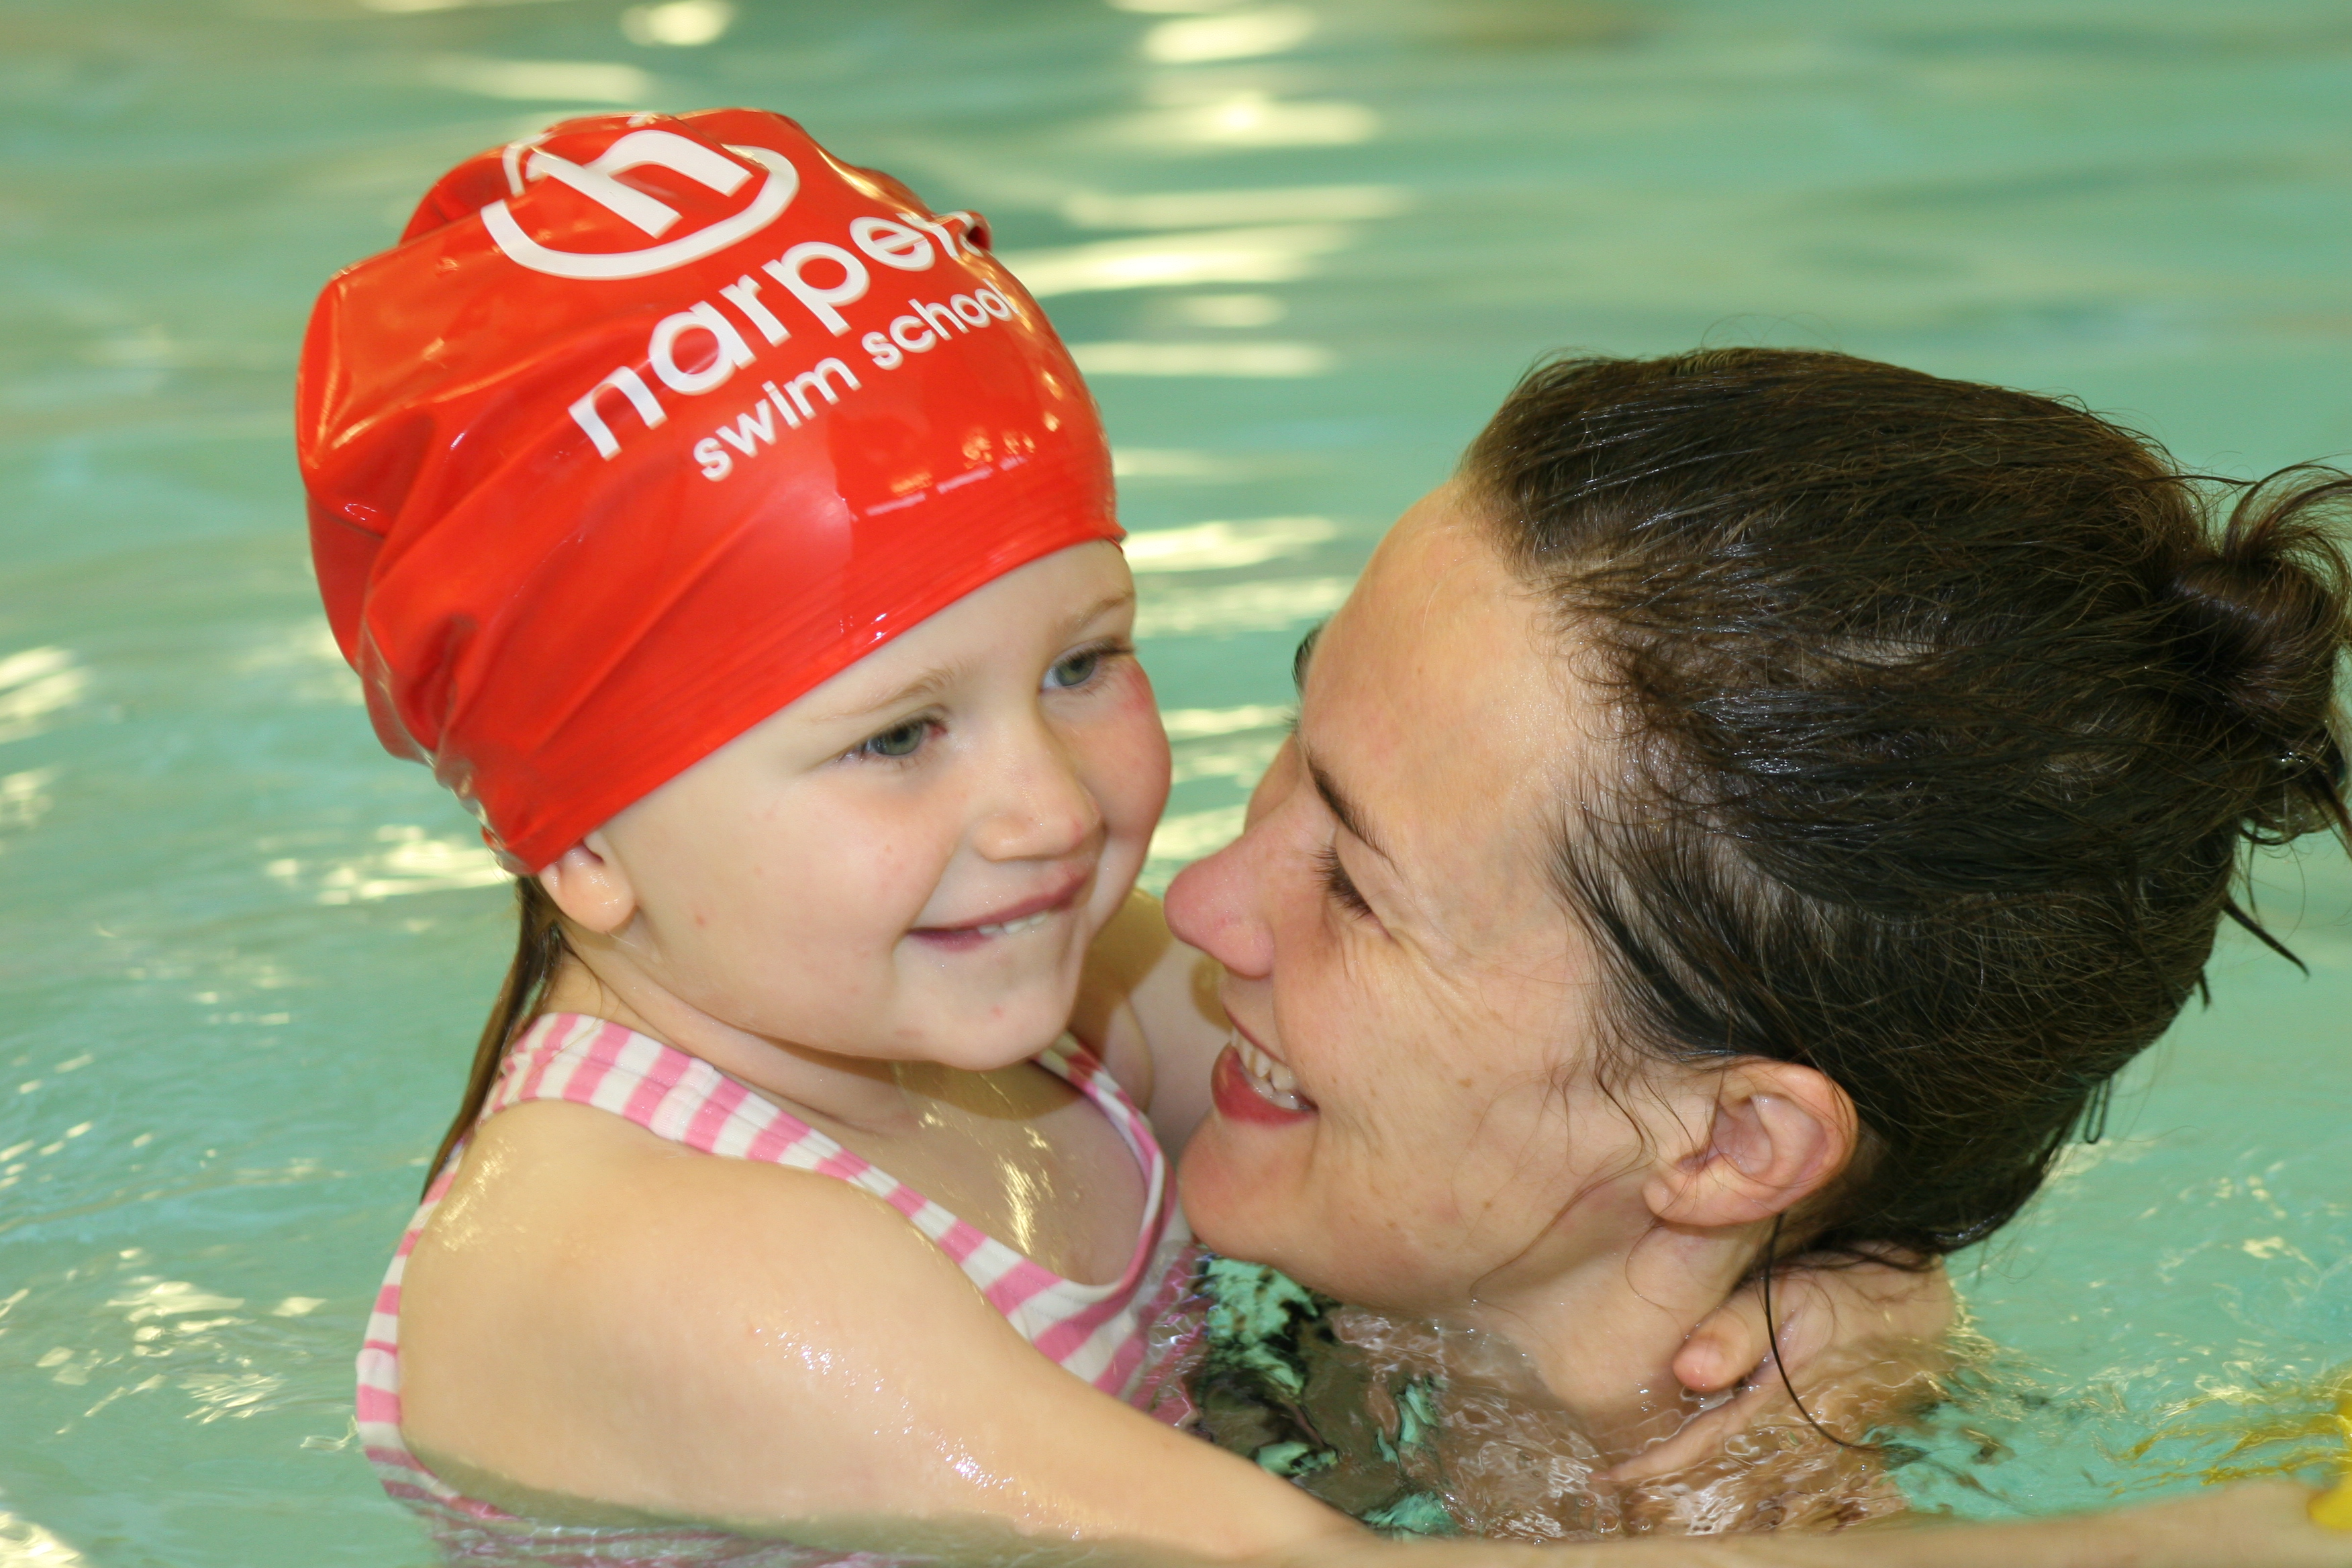 The centre is offering children the chance to swim.